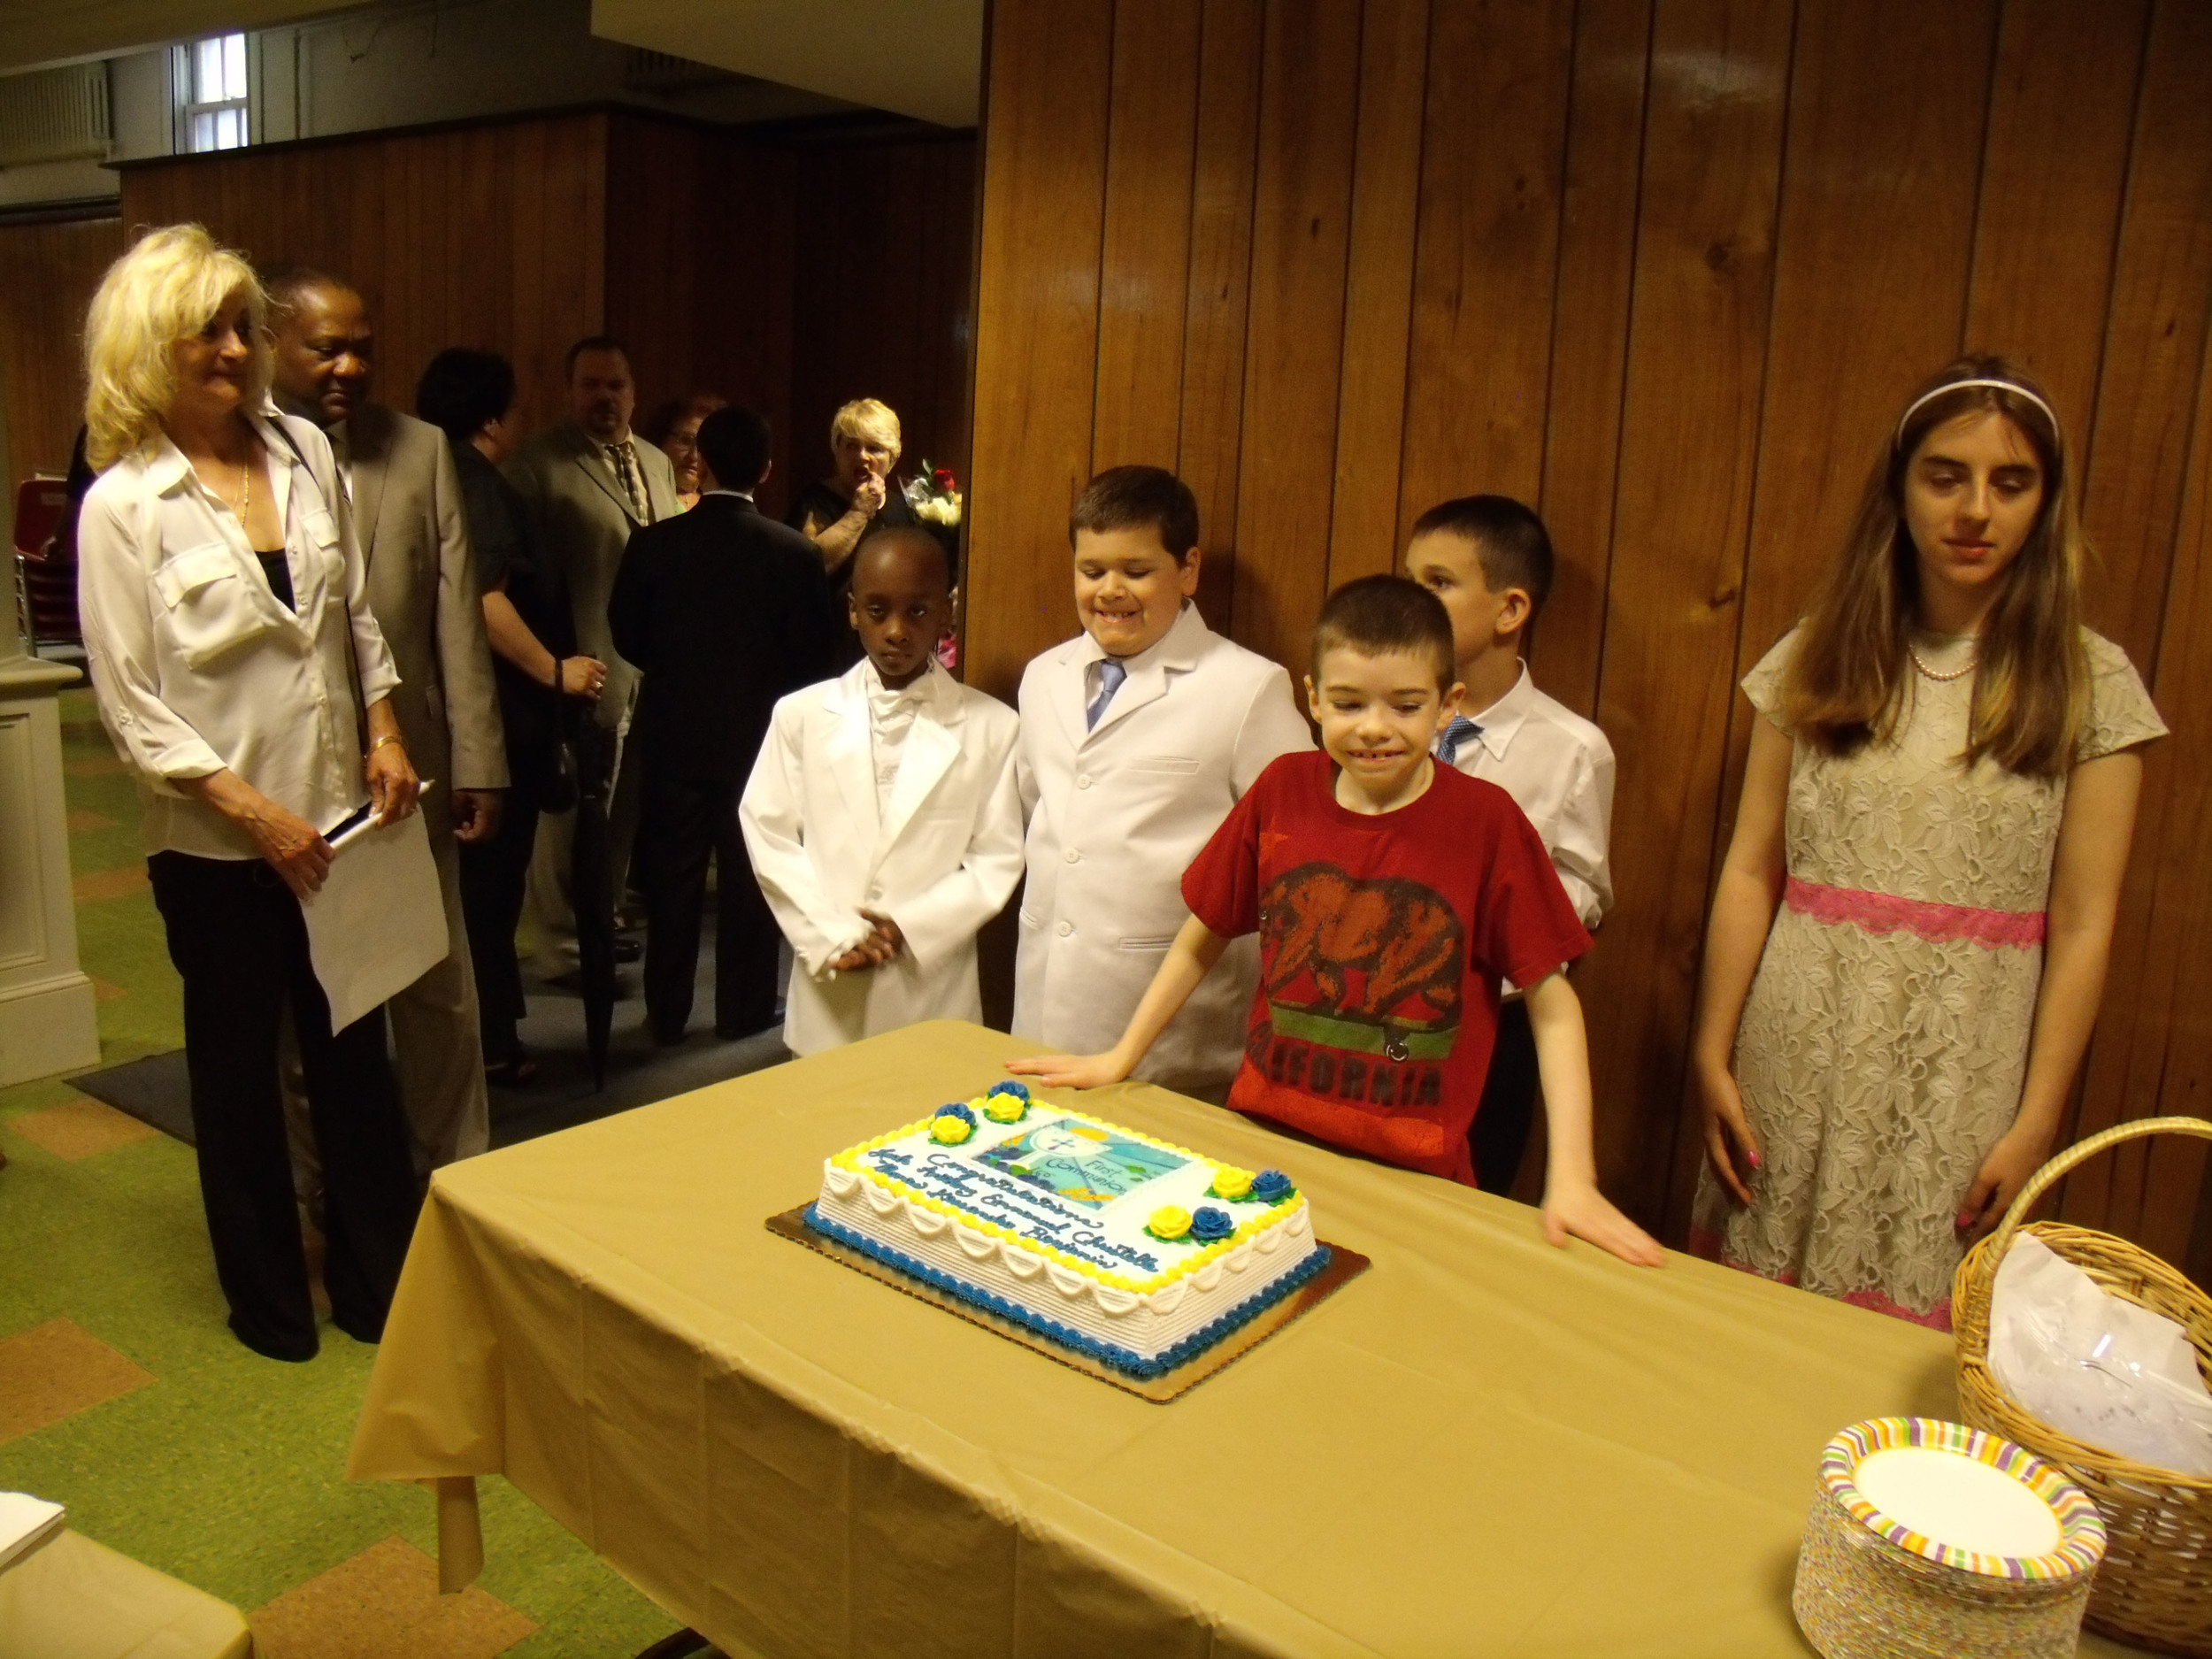 kids - communion cake.jpg